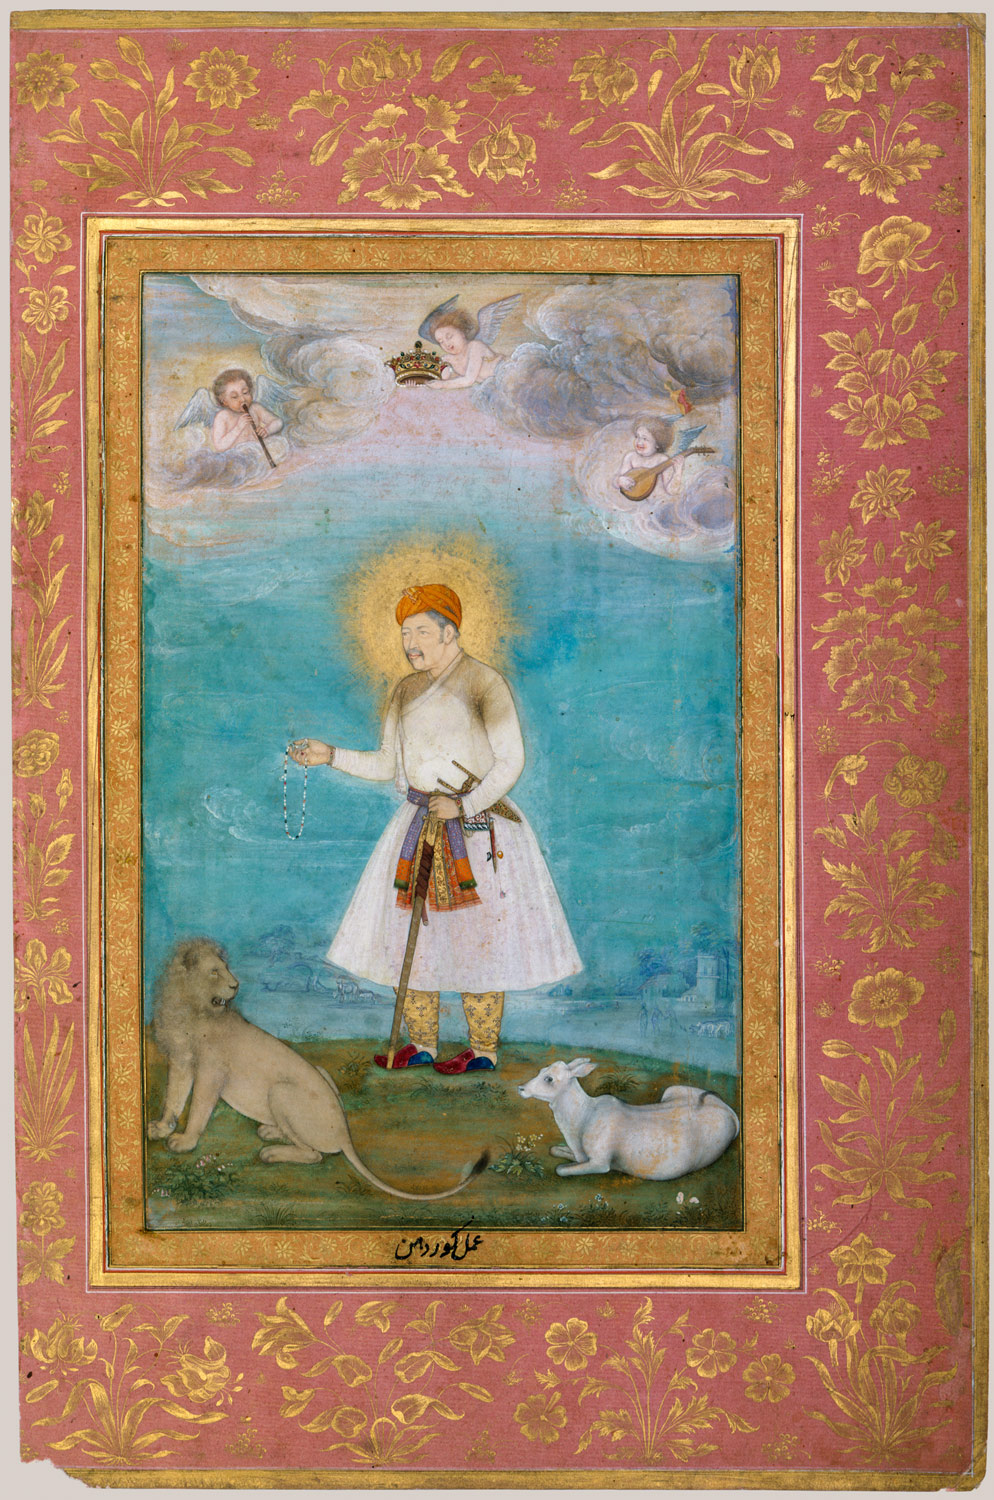 Akbar With Lion and Calf, Folio from the Shah Jahan Album